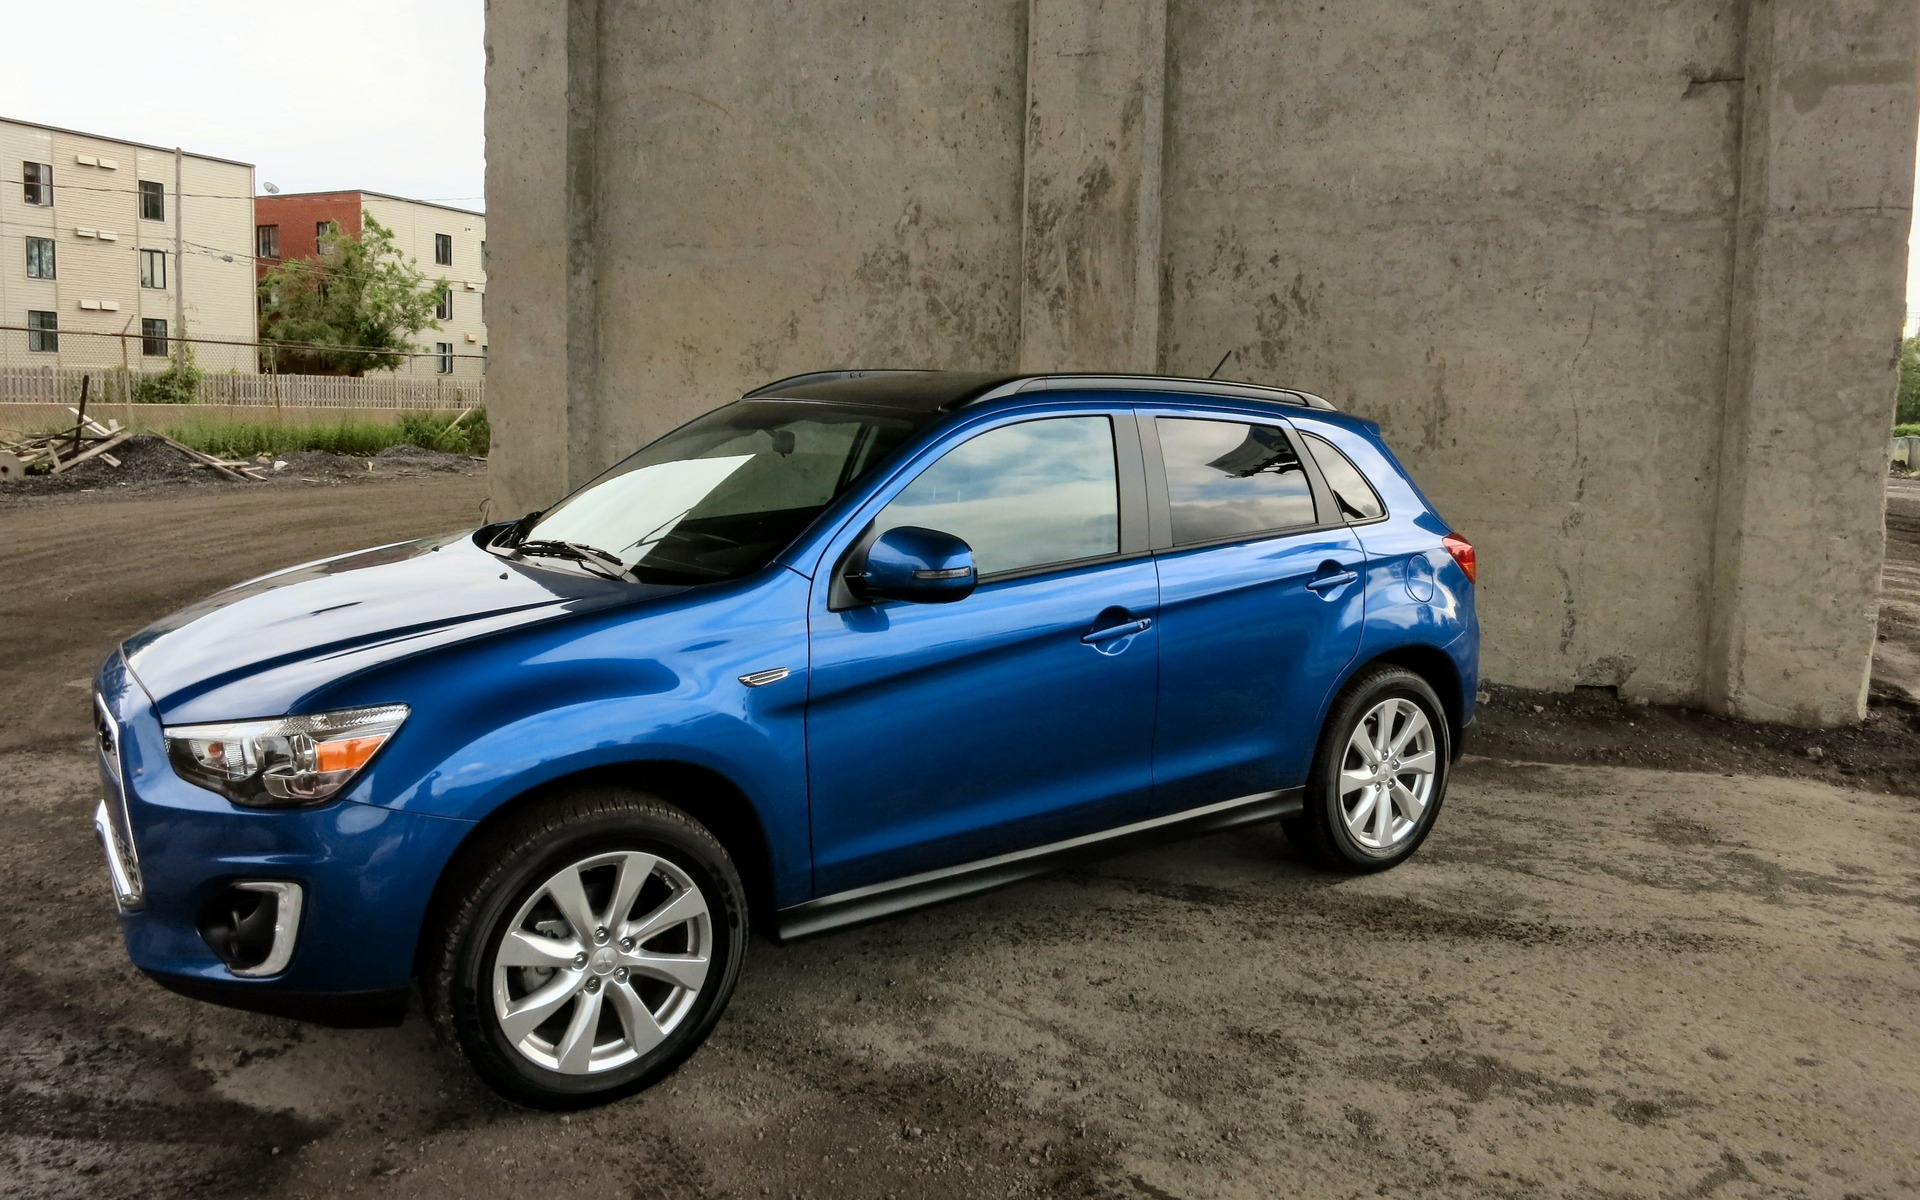 2018 Mitsubishi Rvr News Reviews Picture Galleries And Videos